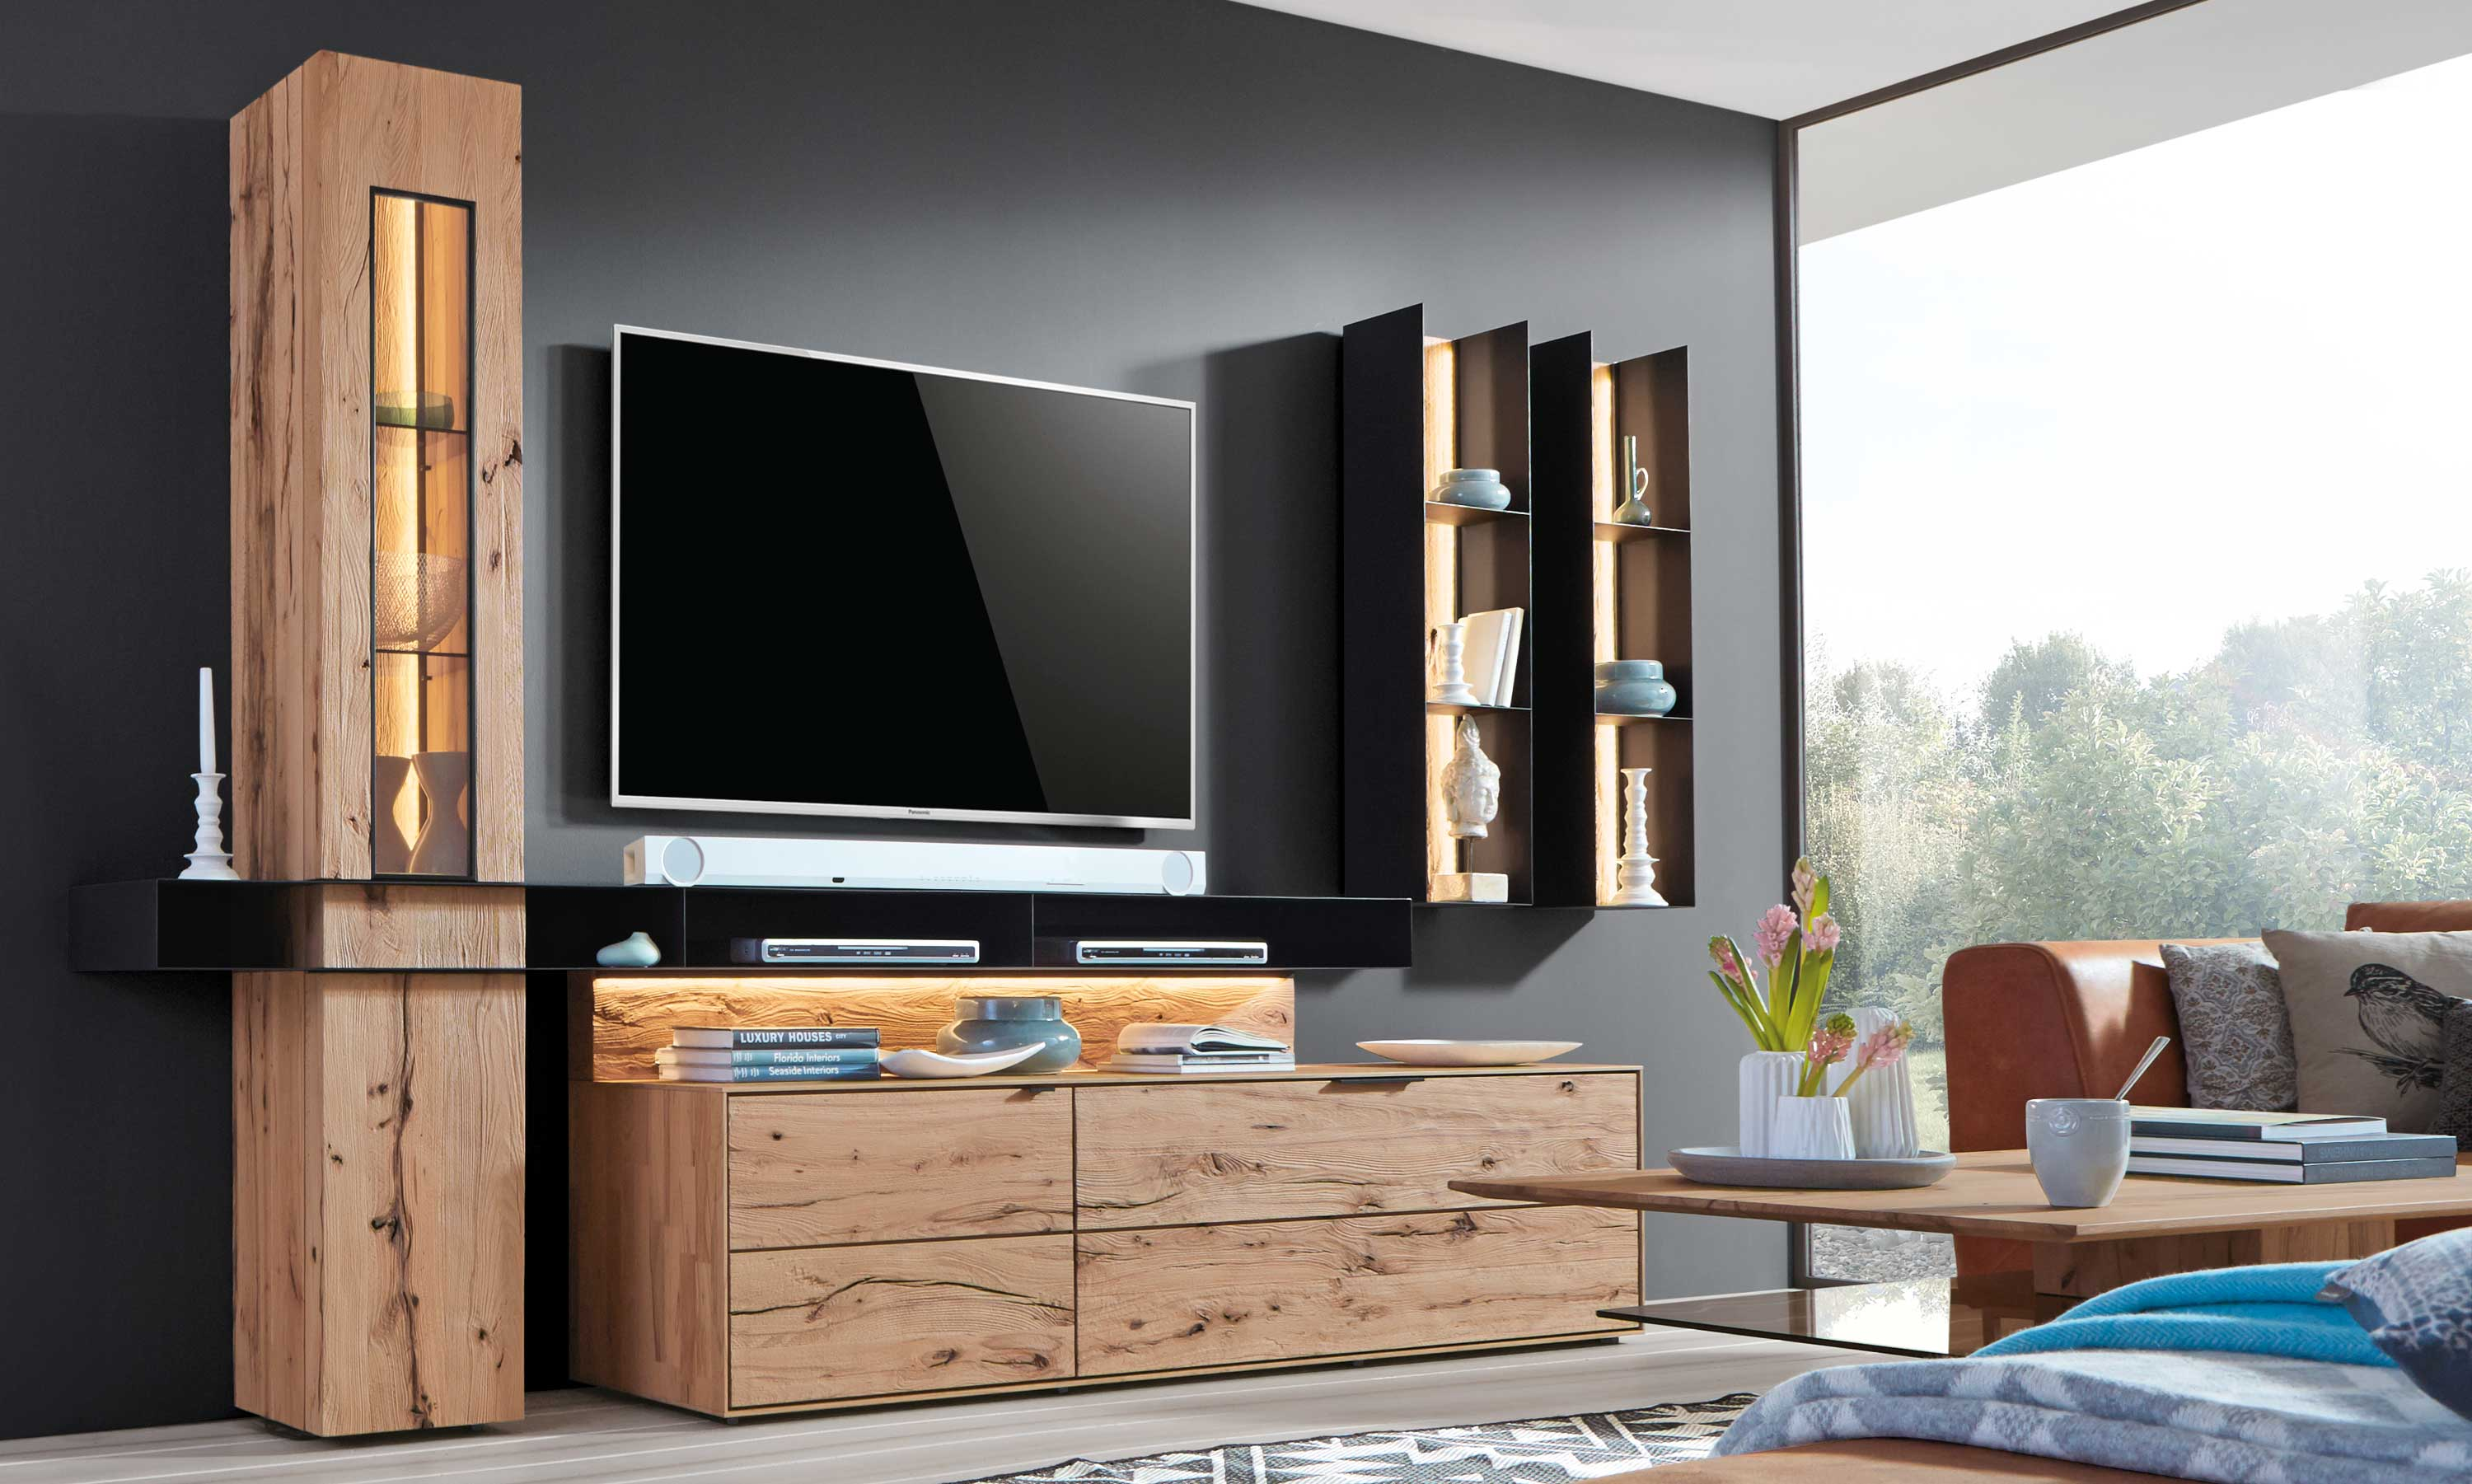 hartmann talis massivholz wohnwand riffbuche individuell m belmeile24. Black Bedroom Furniture Sets. Home Design Ideas